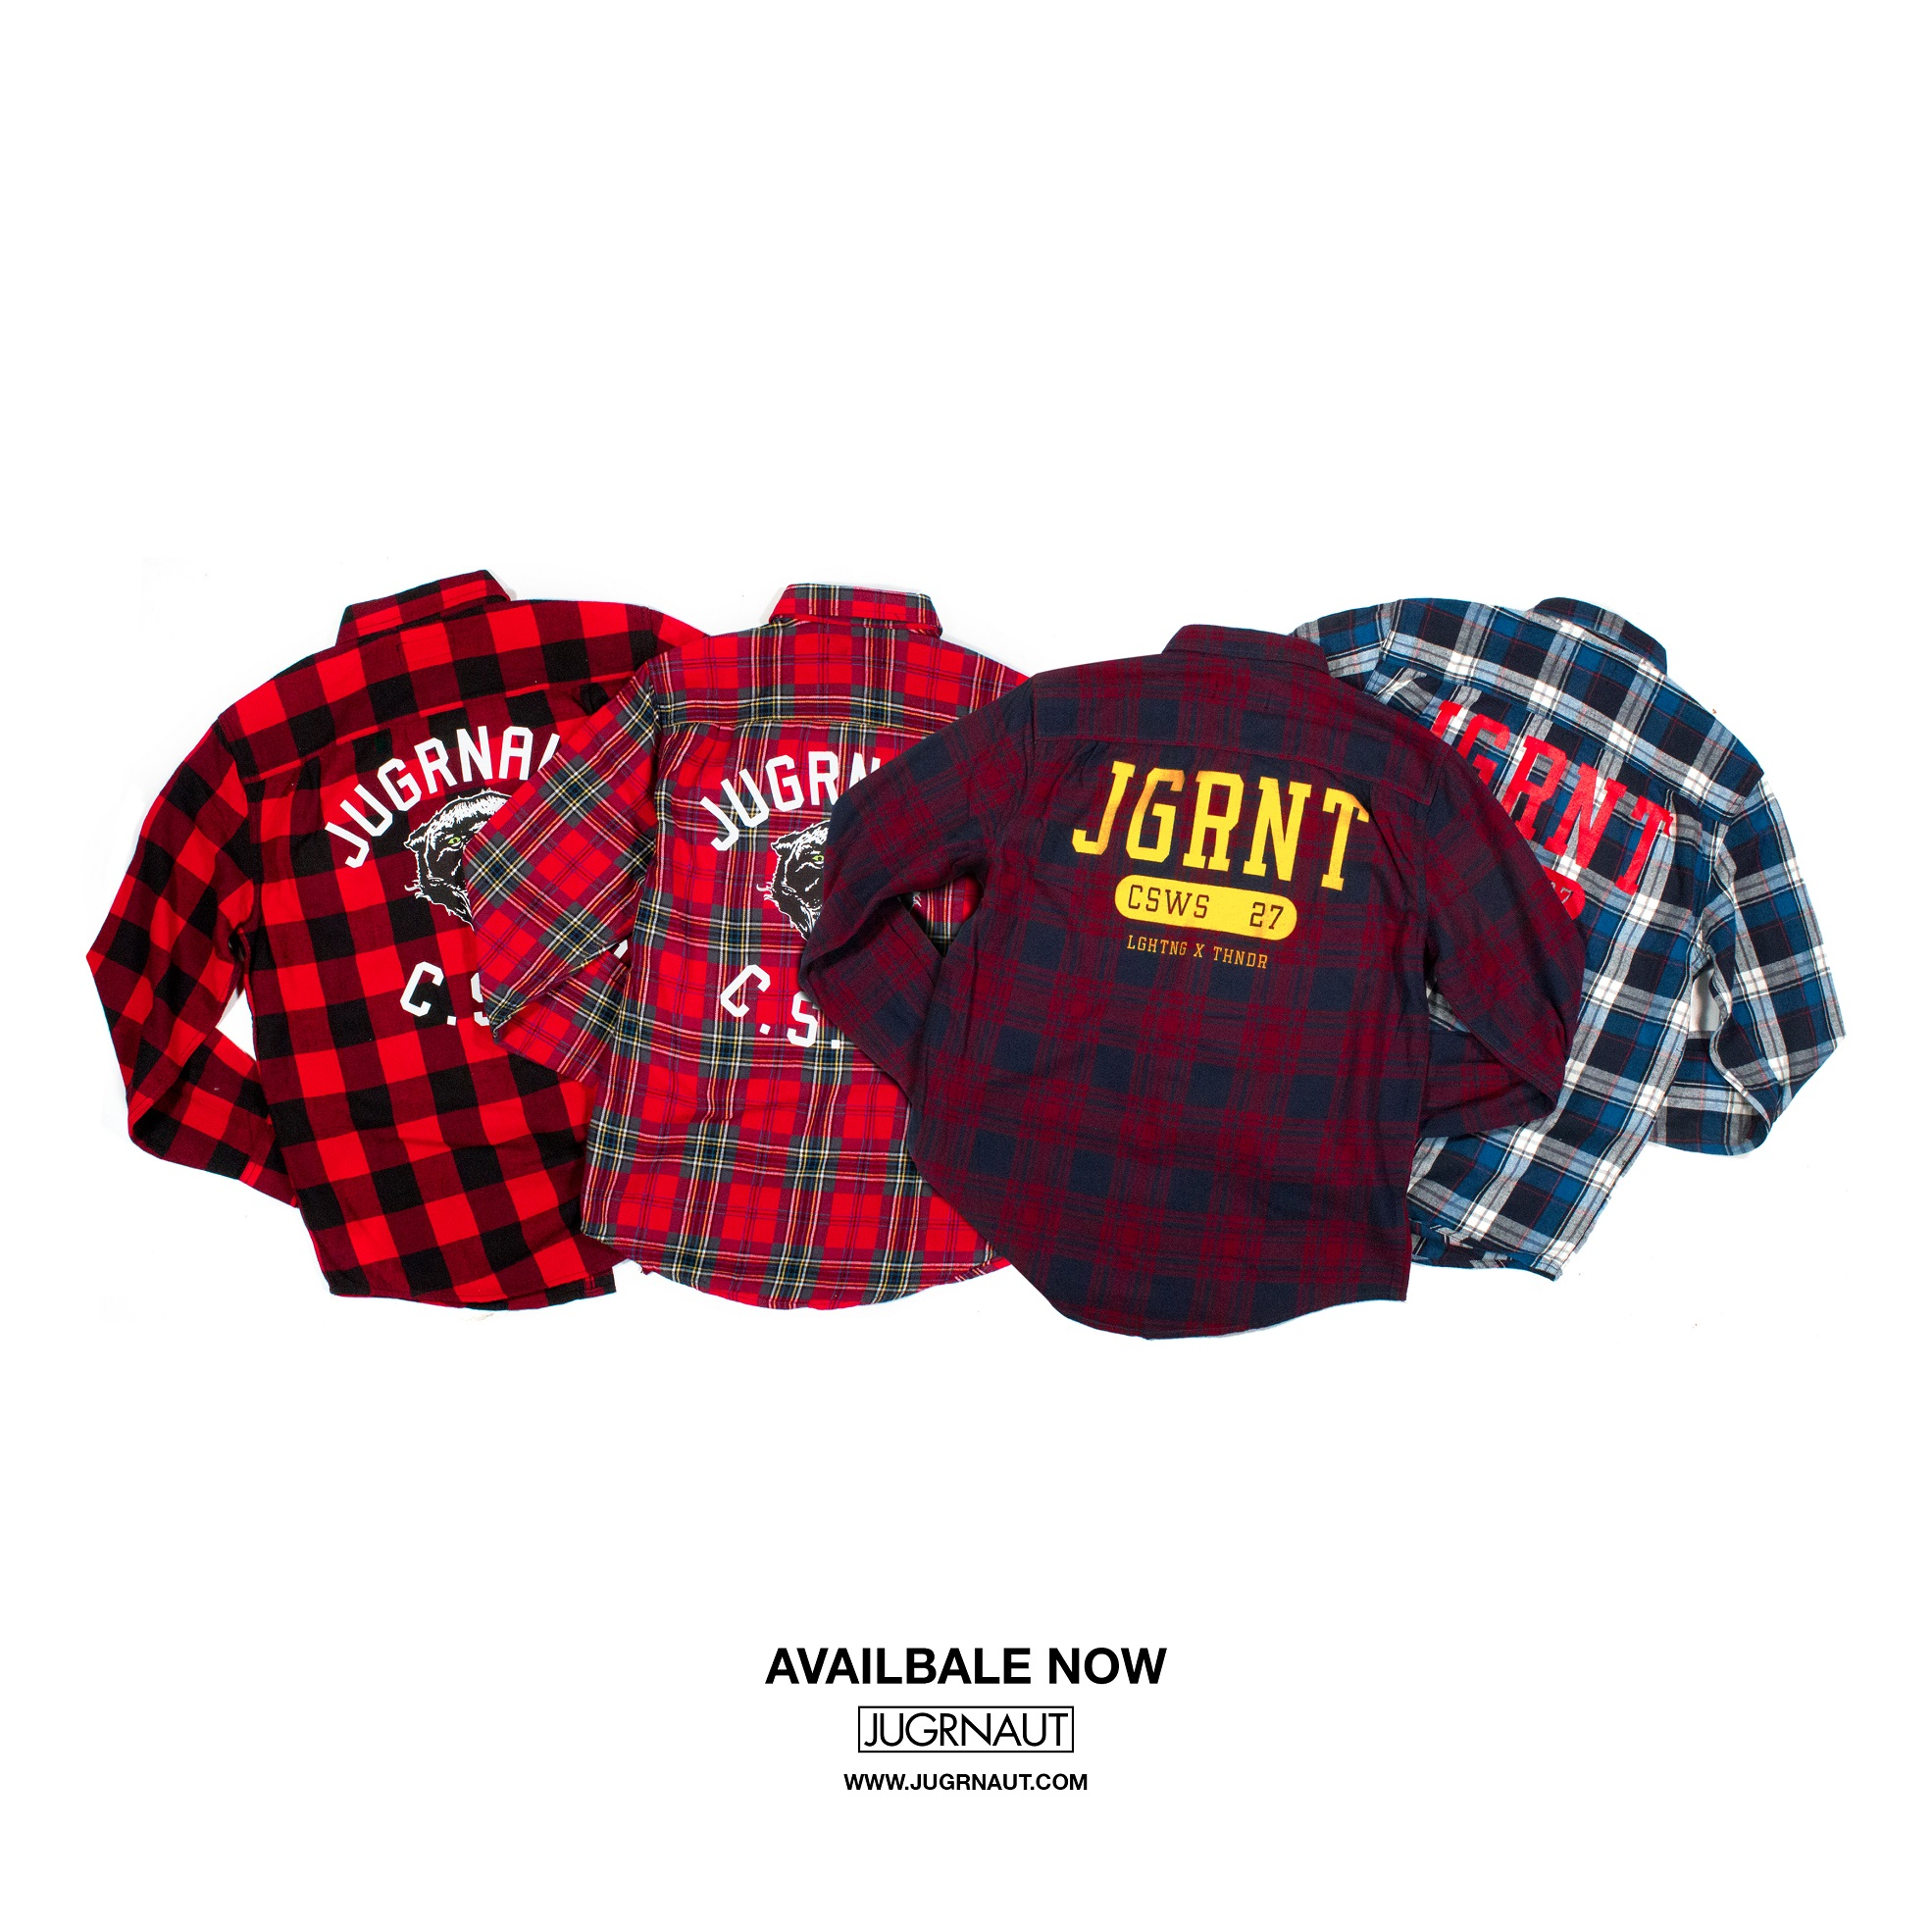 FLANNEL AVAILABLE